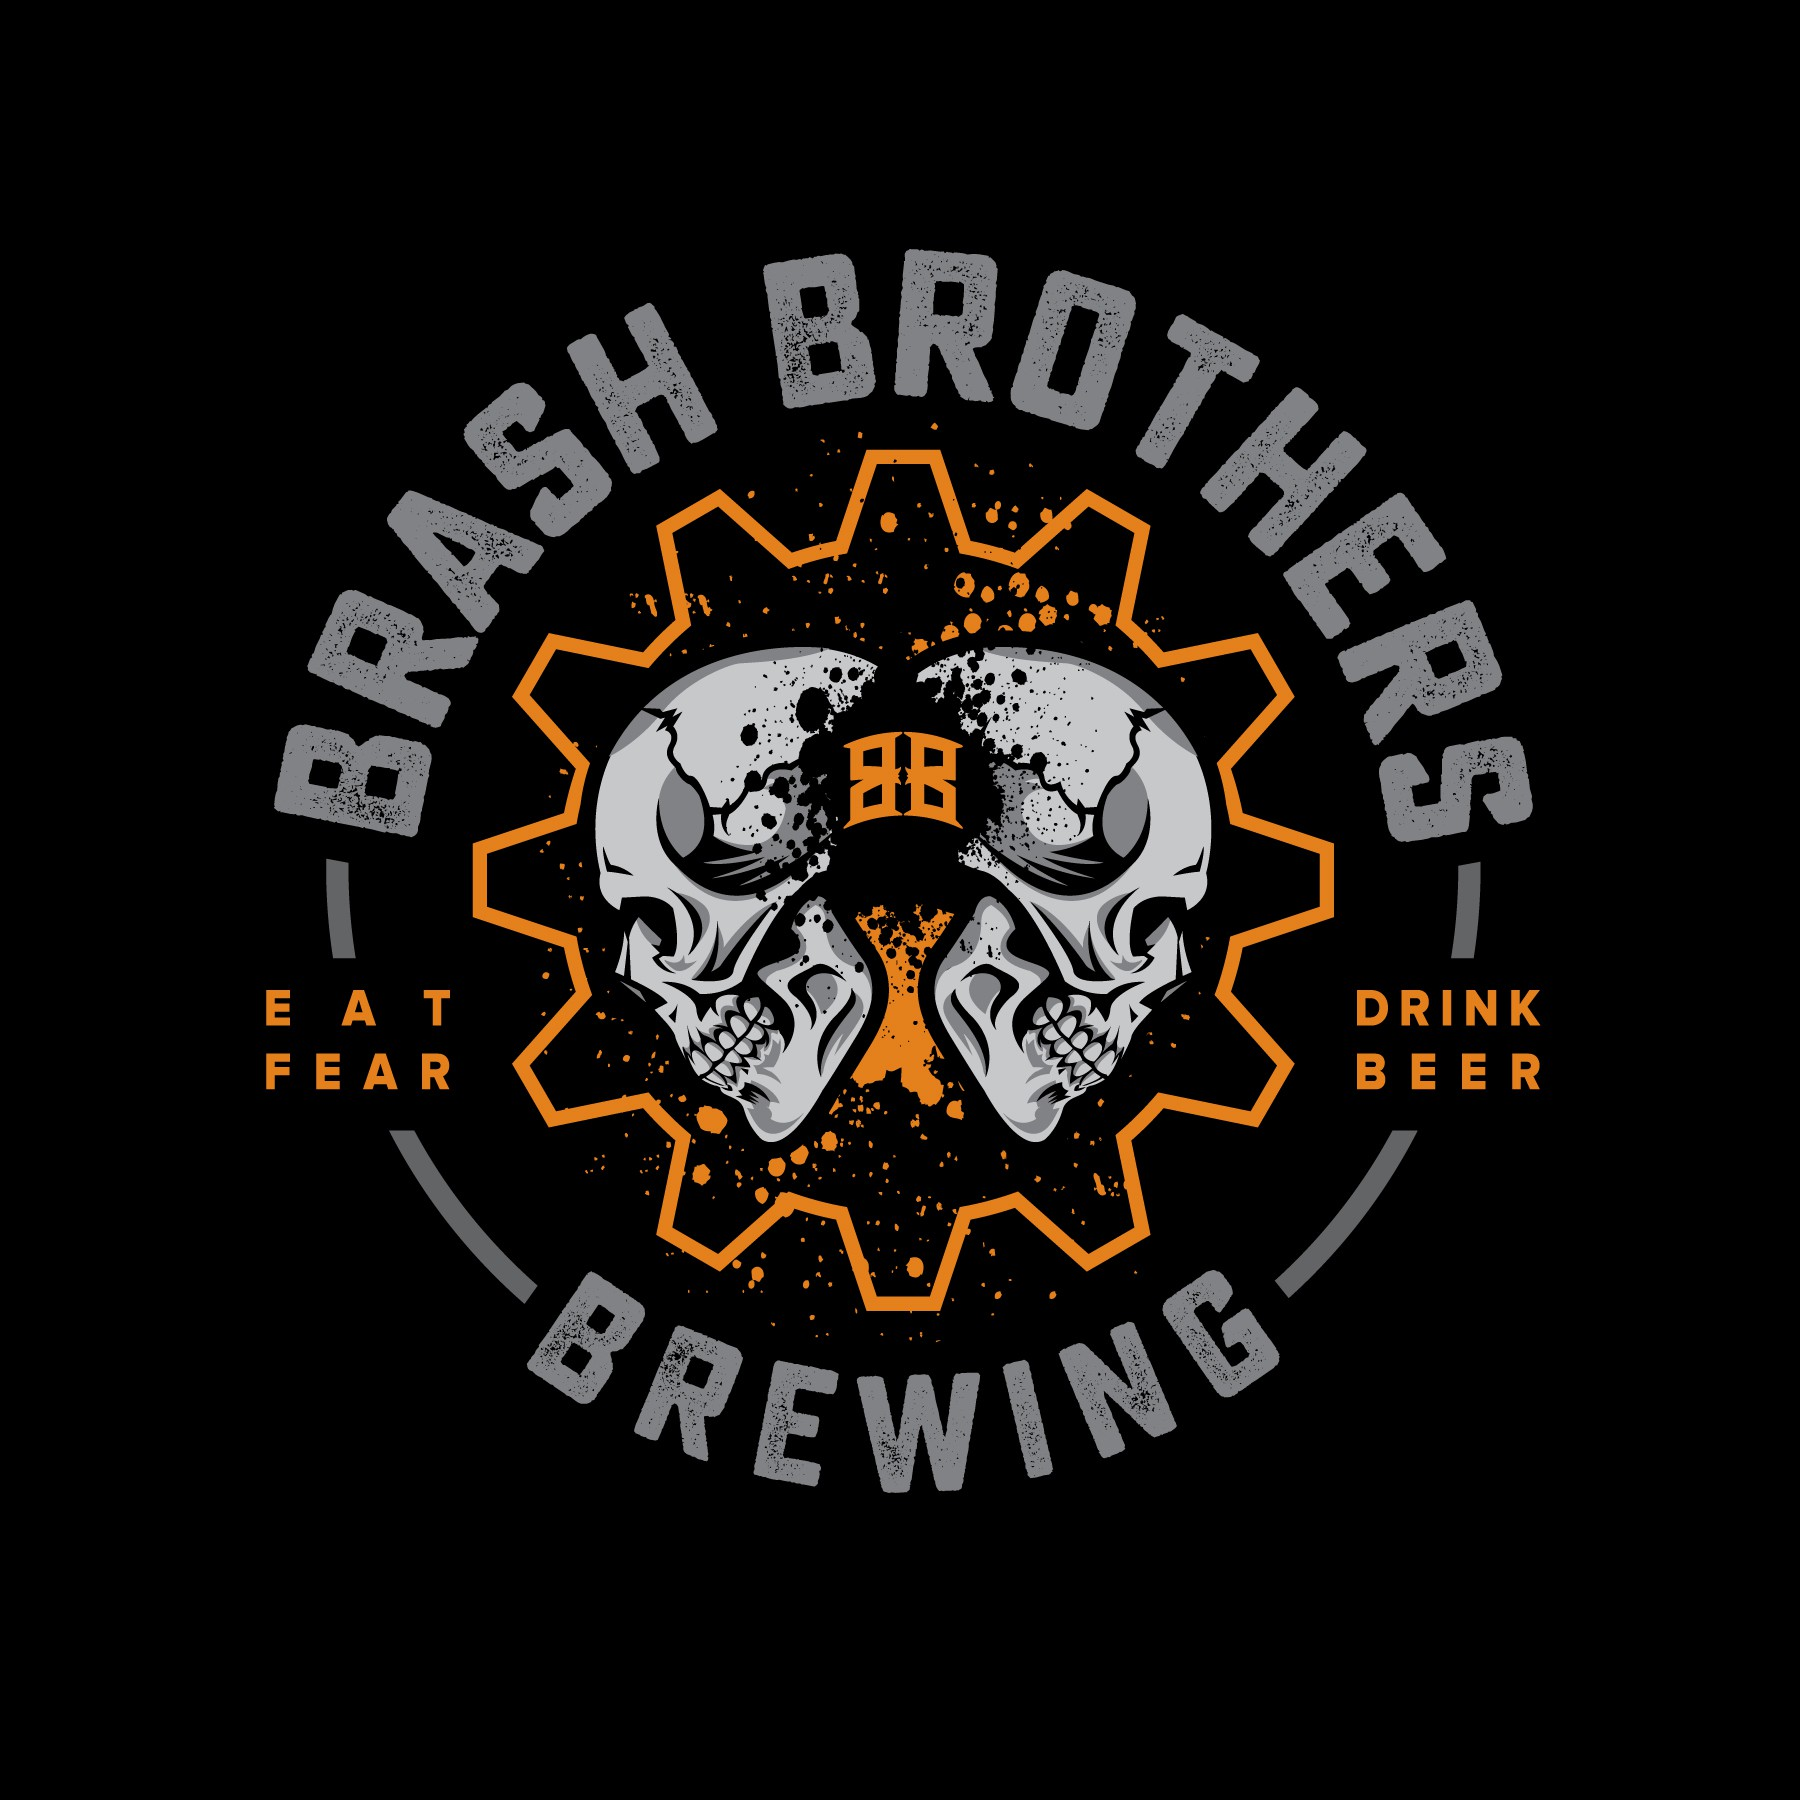 Design an unapologetic logo for a craft brewing company